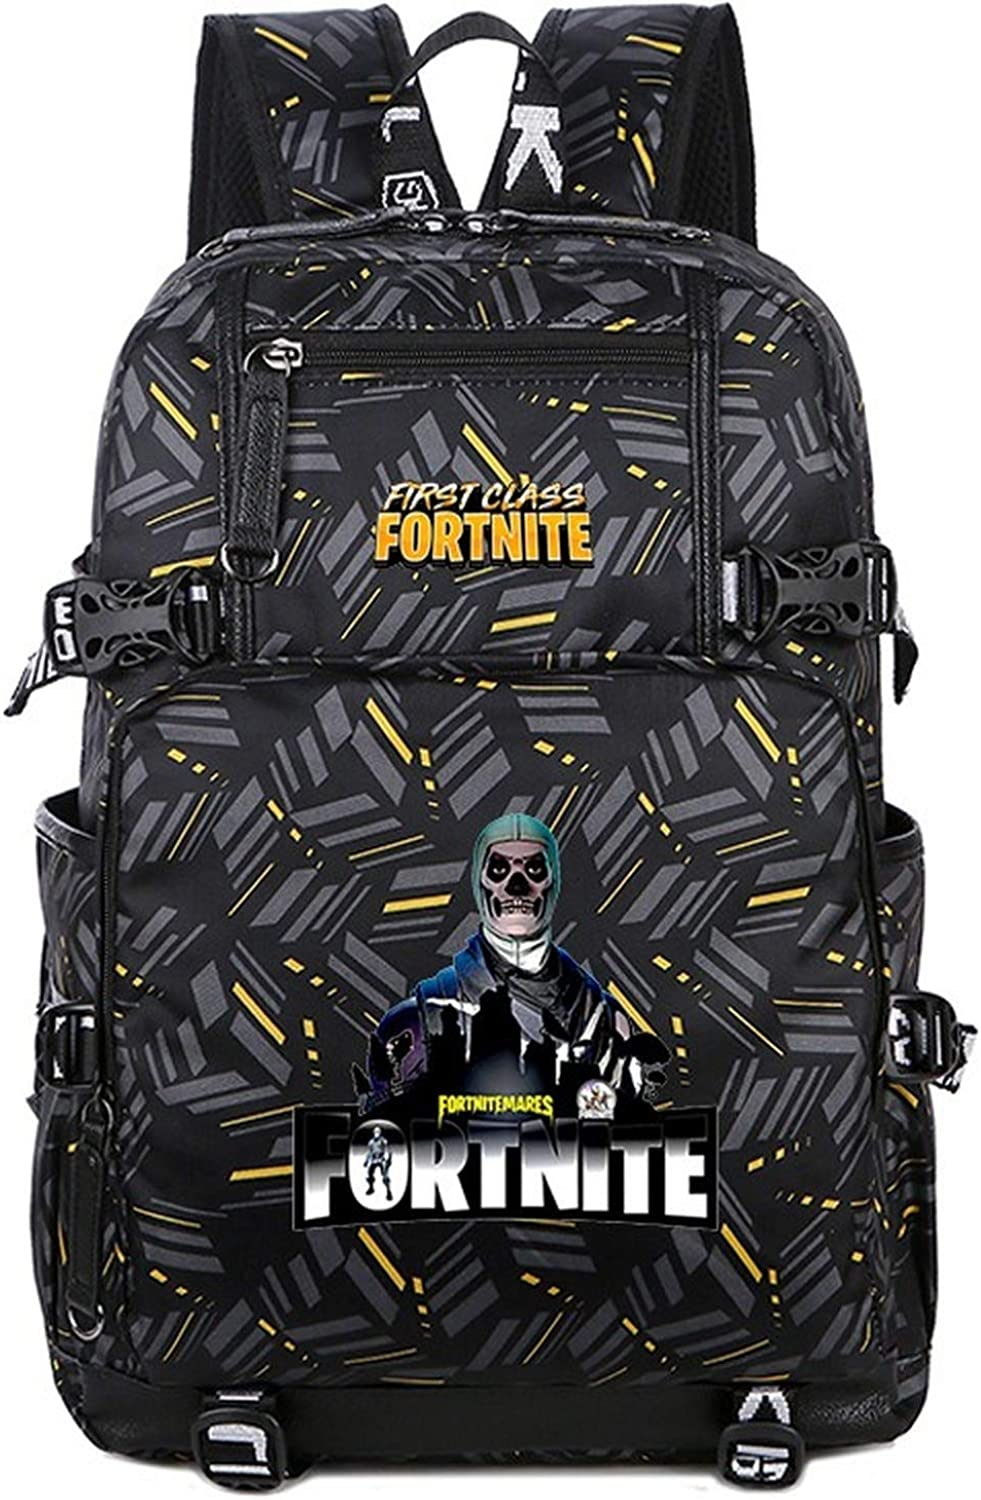 School Bag Teenager Casual Sports Backpack Men's And Women's Student Backpack For Fortress Night Game Related